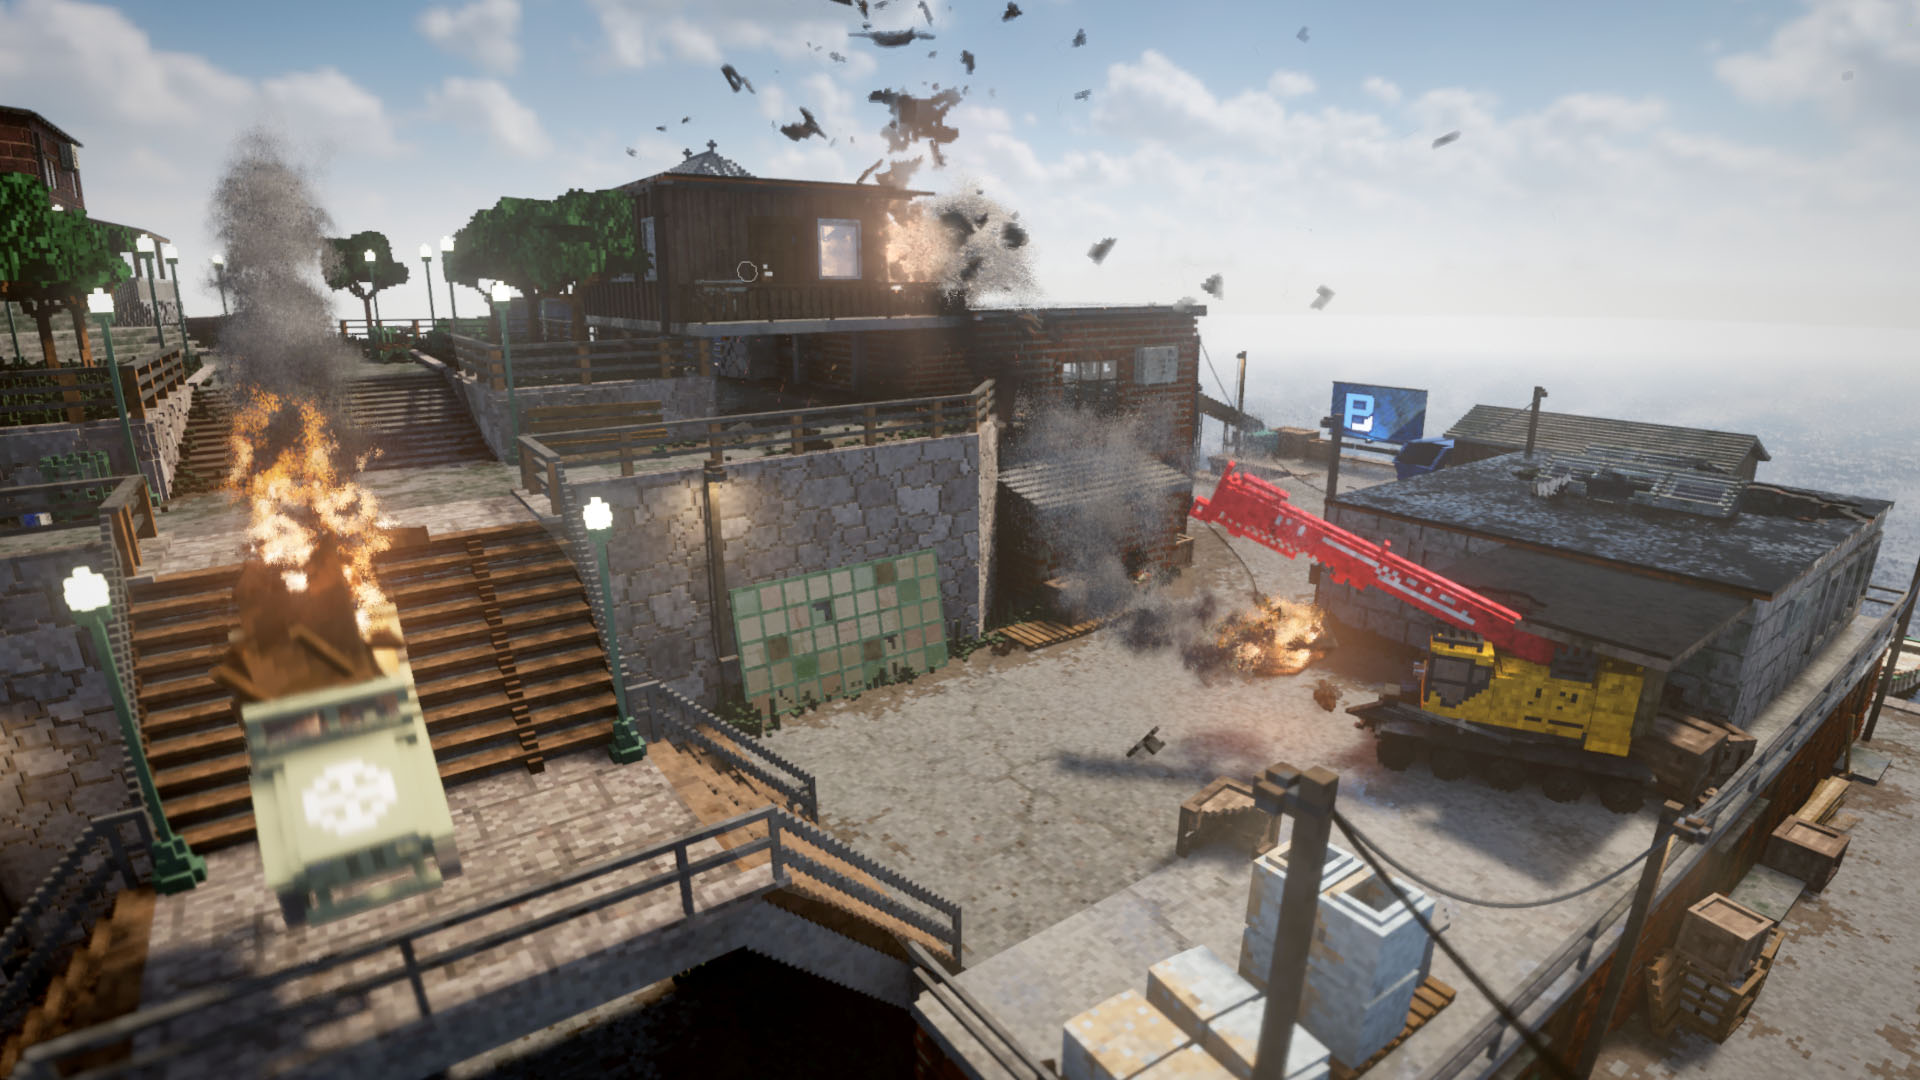 A screenshot of Teardown showing several buildings and vehicles exploding in sequence at dockyard.